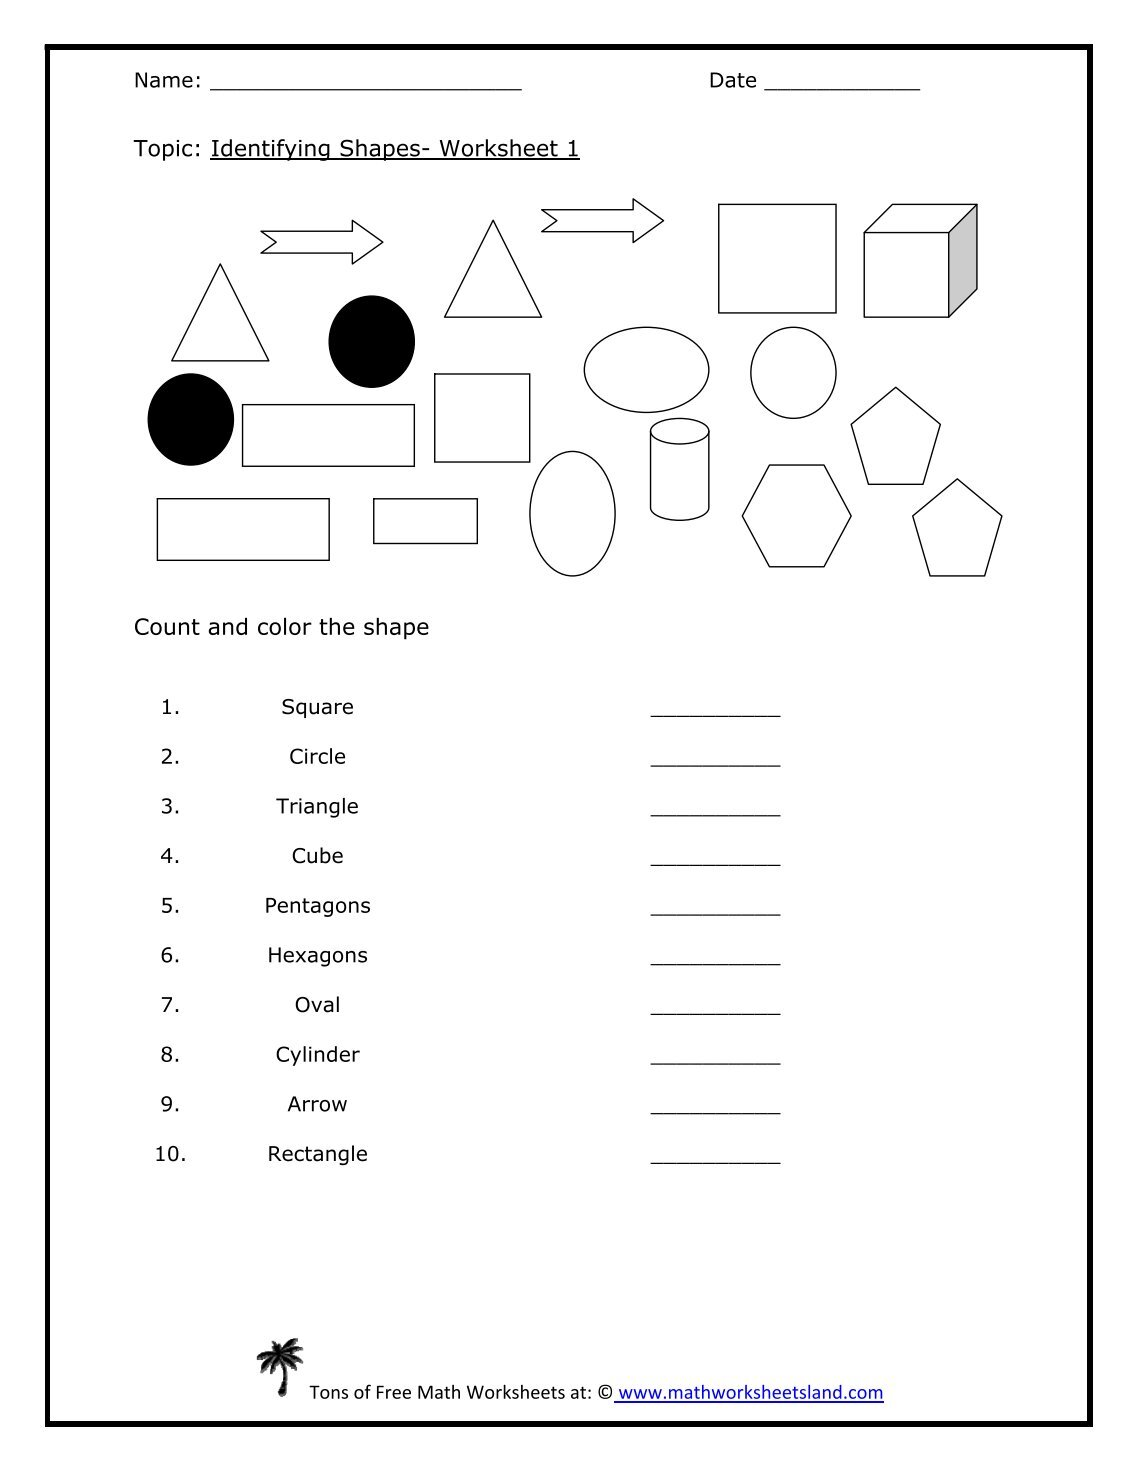 Worksheets Math Worksheets Land 330 free magazines from mathworksheetsland com com